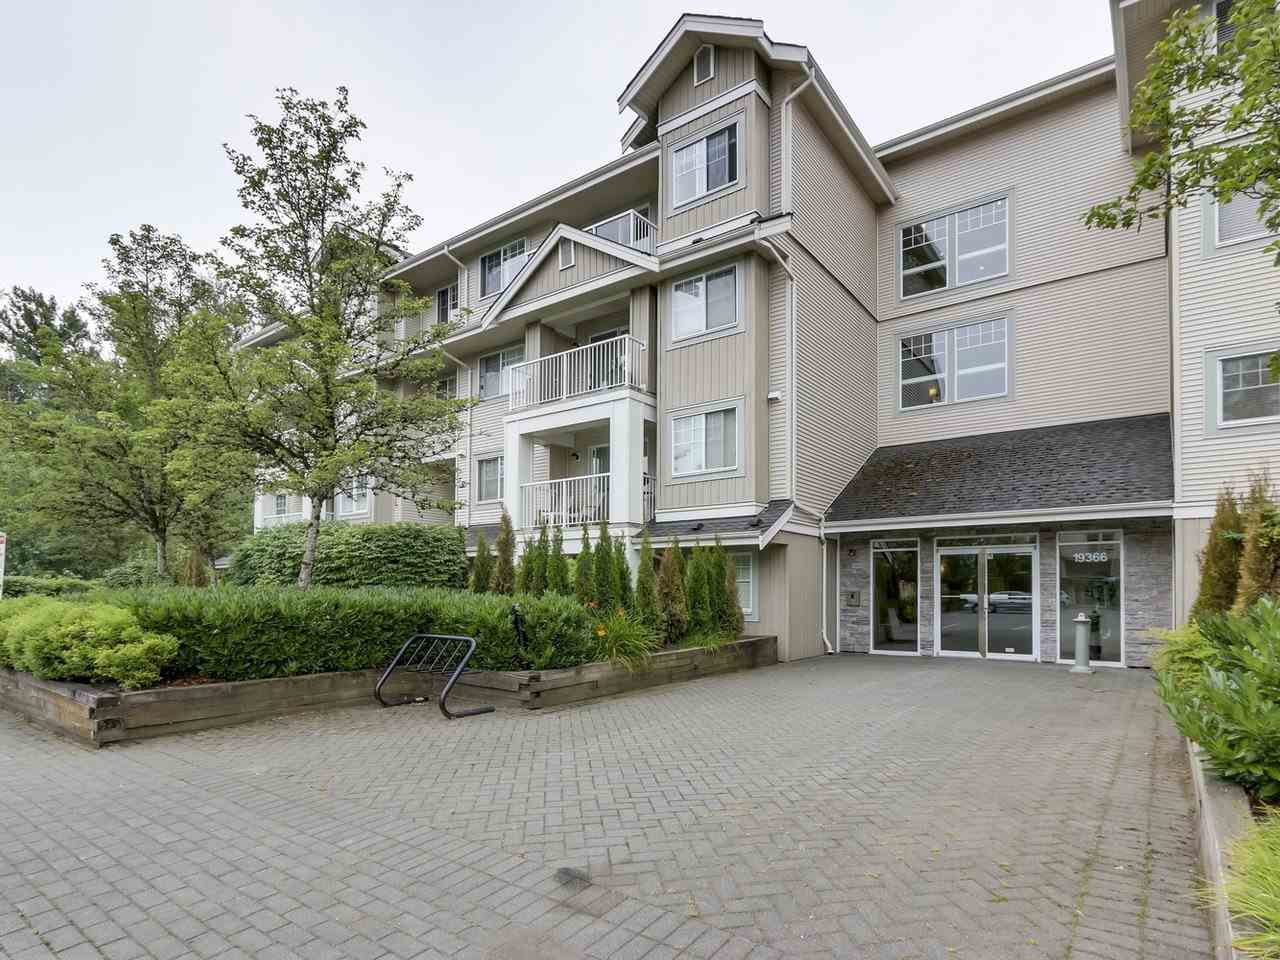 """Main Photo: 105 19366 65 Avenue in Surrey: Clayton Condo for sale in """"THE LIBERTY"""" (Cloverdale)  : MLS®# R2287706"""